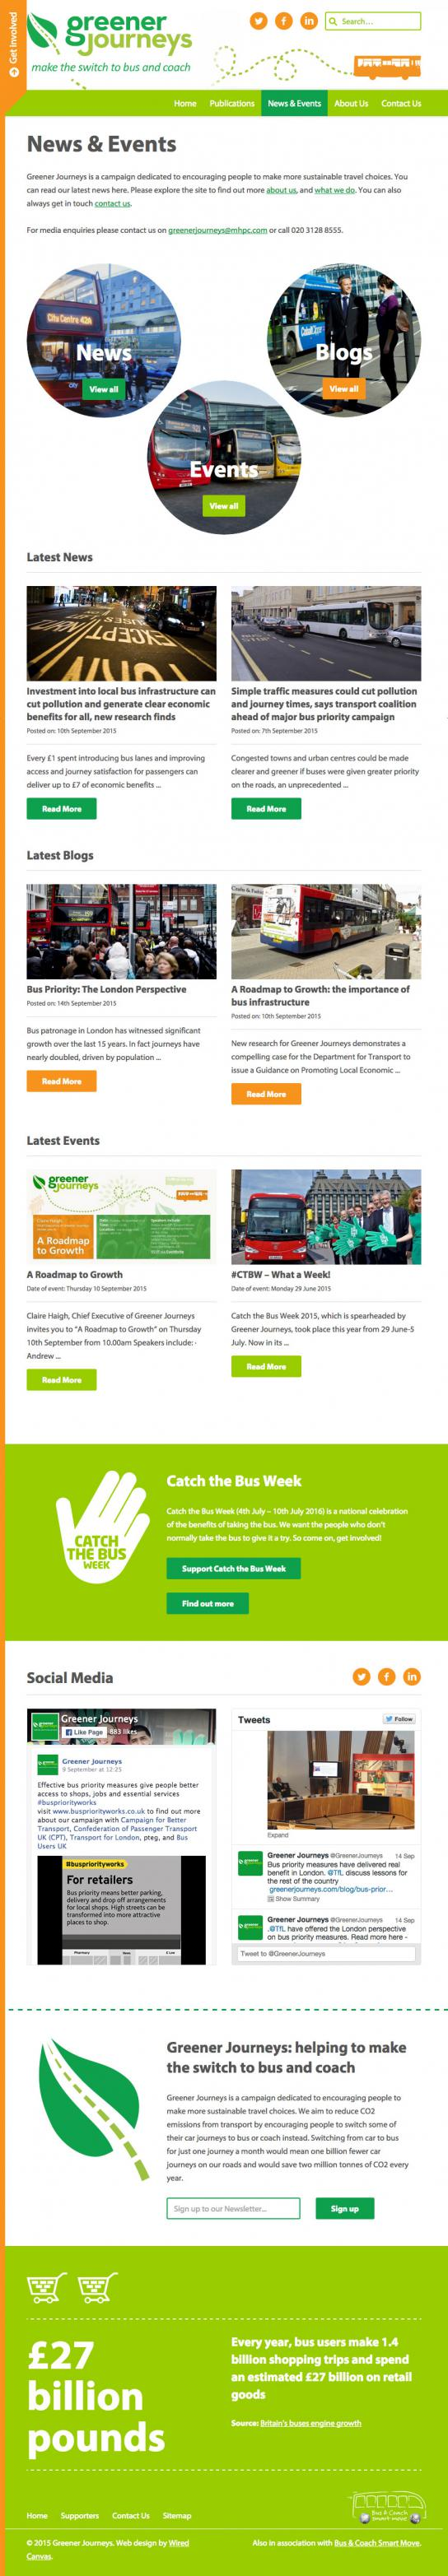 Greener Journeys Tablet Website Design